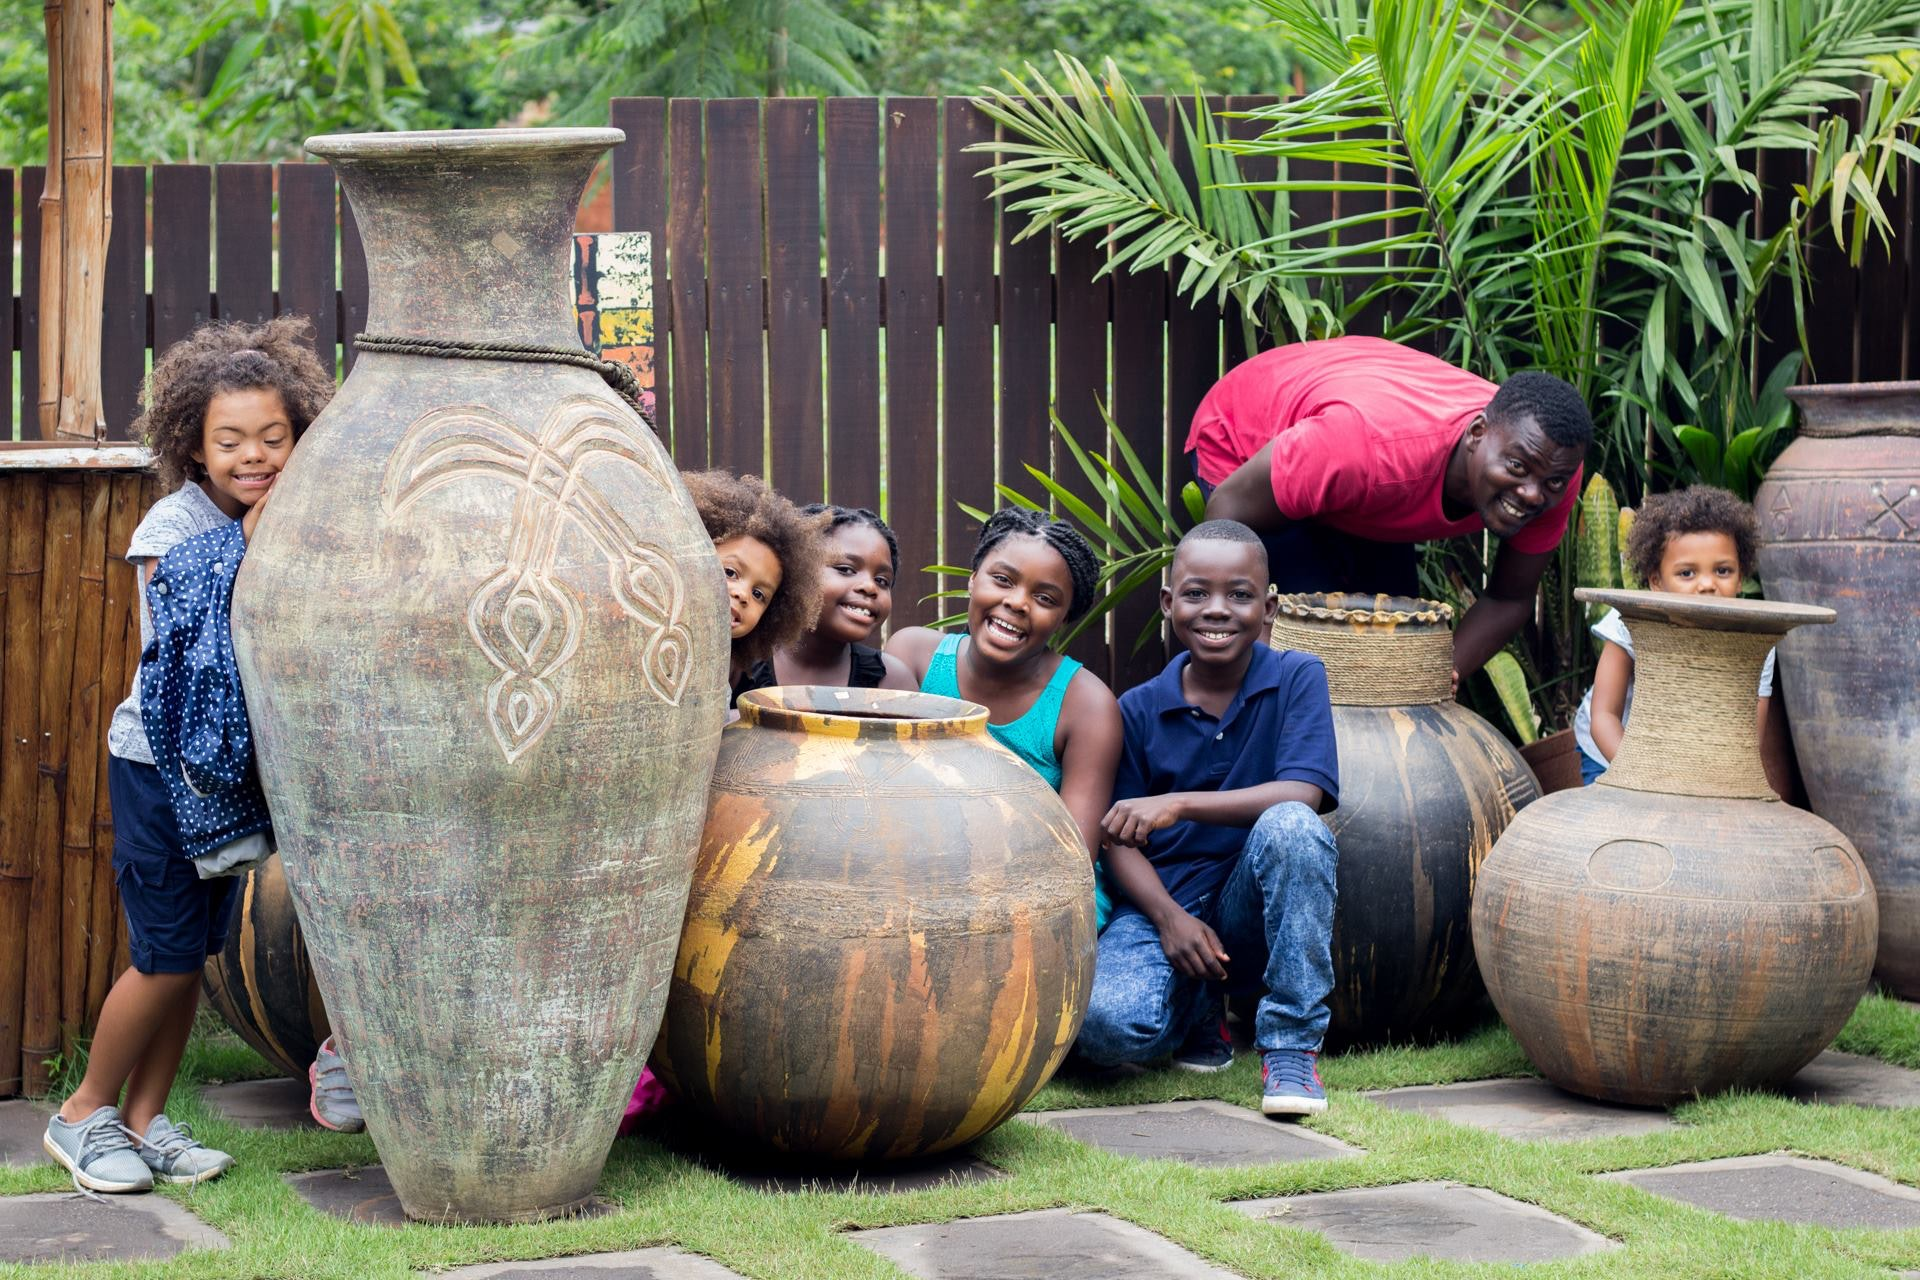 Free stock photo of Beautiful with Africa Craft work pot design